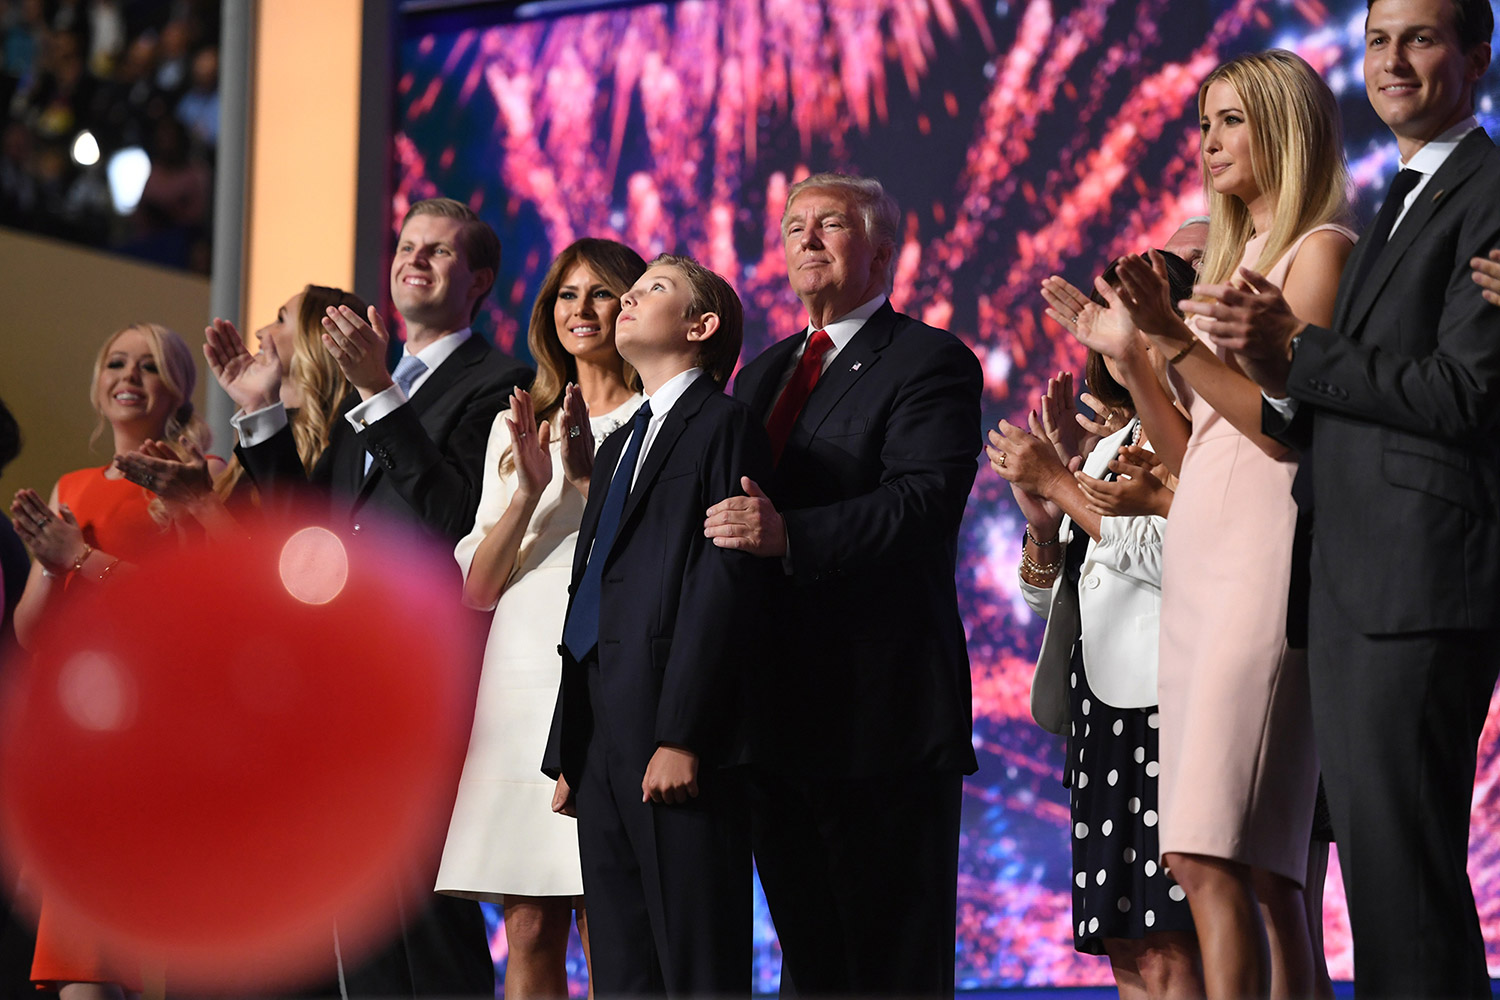 Donald Trump celebrates with his family after giving his nomination acceptance speech at the Republican National Convention on July 21.